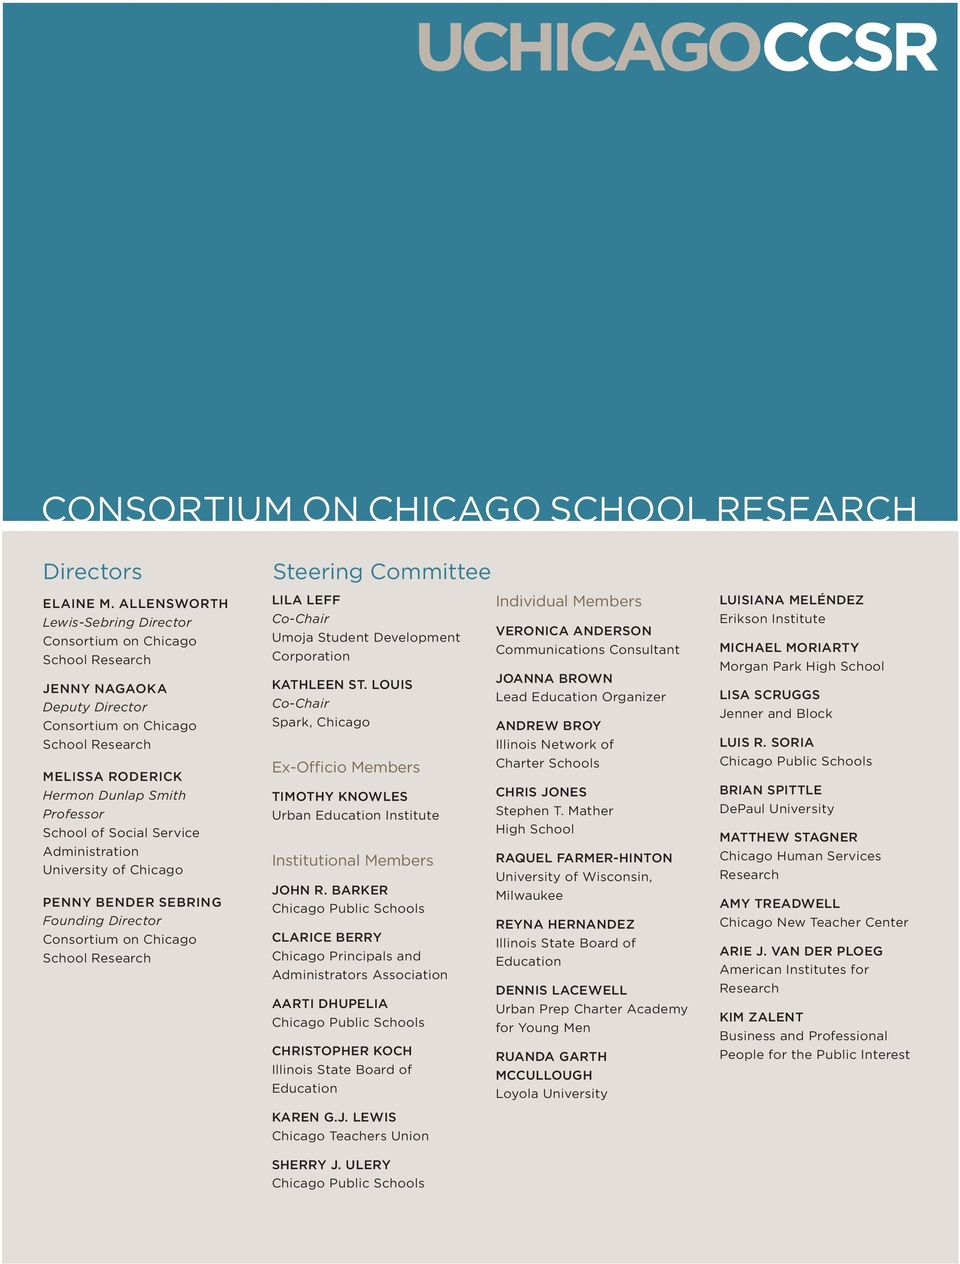 Social Service Administration University of Chicago PENNY BENDER SEBRING Founding Director Consortium on Chicago School Research Steering Committee LILA LEFF Co-Chair Umoja Student Development